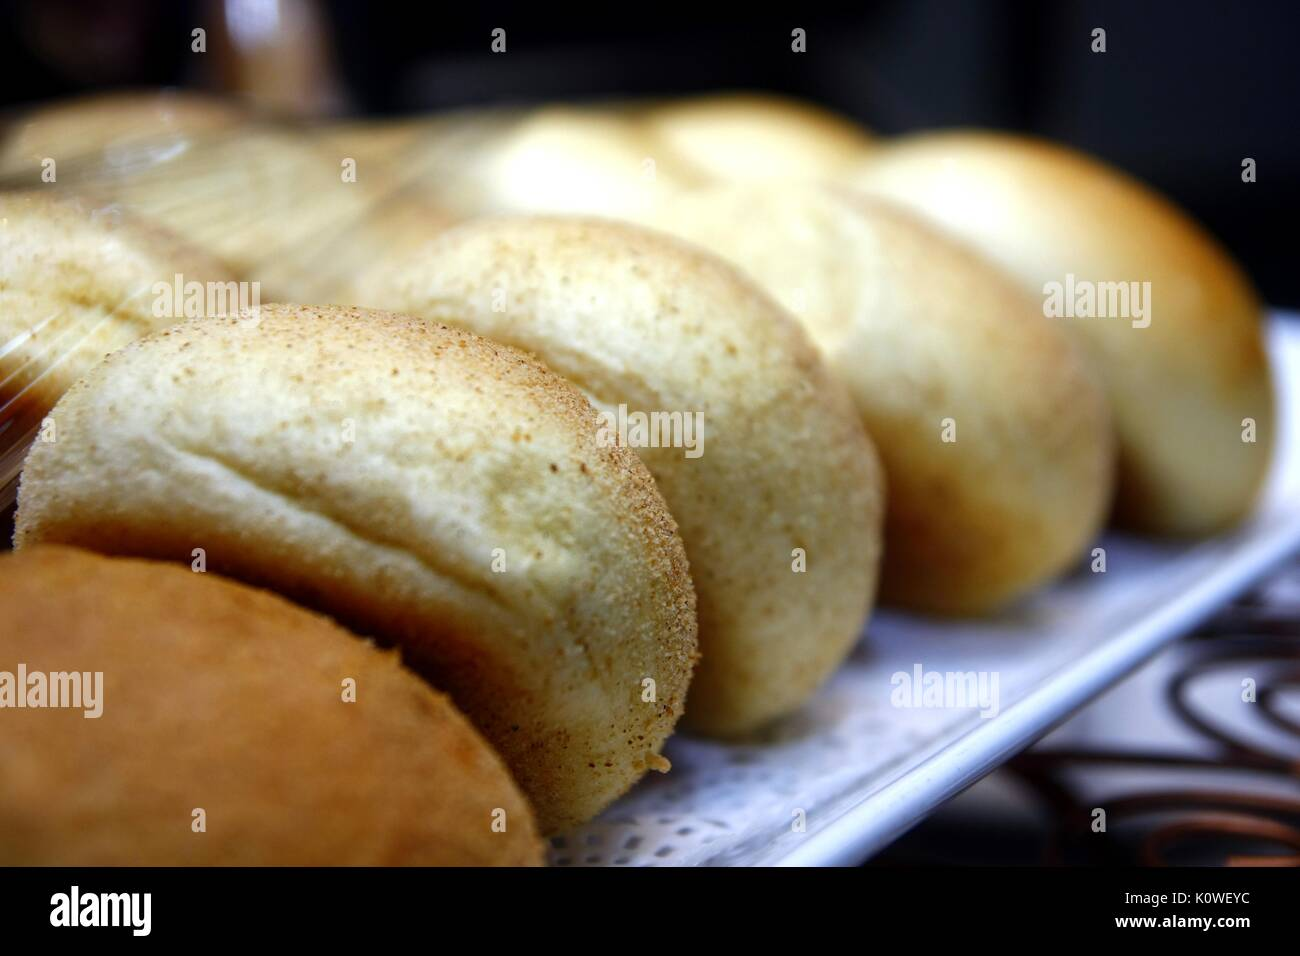 Photo of dinner rolls on a tray - Stock Image